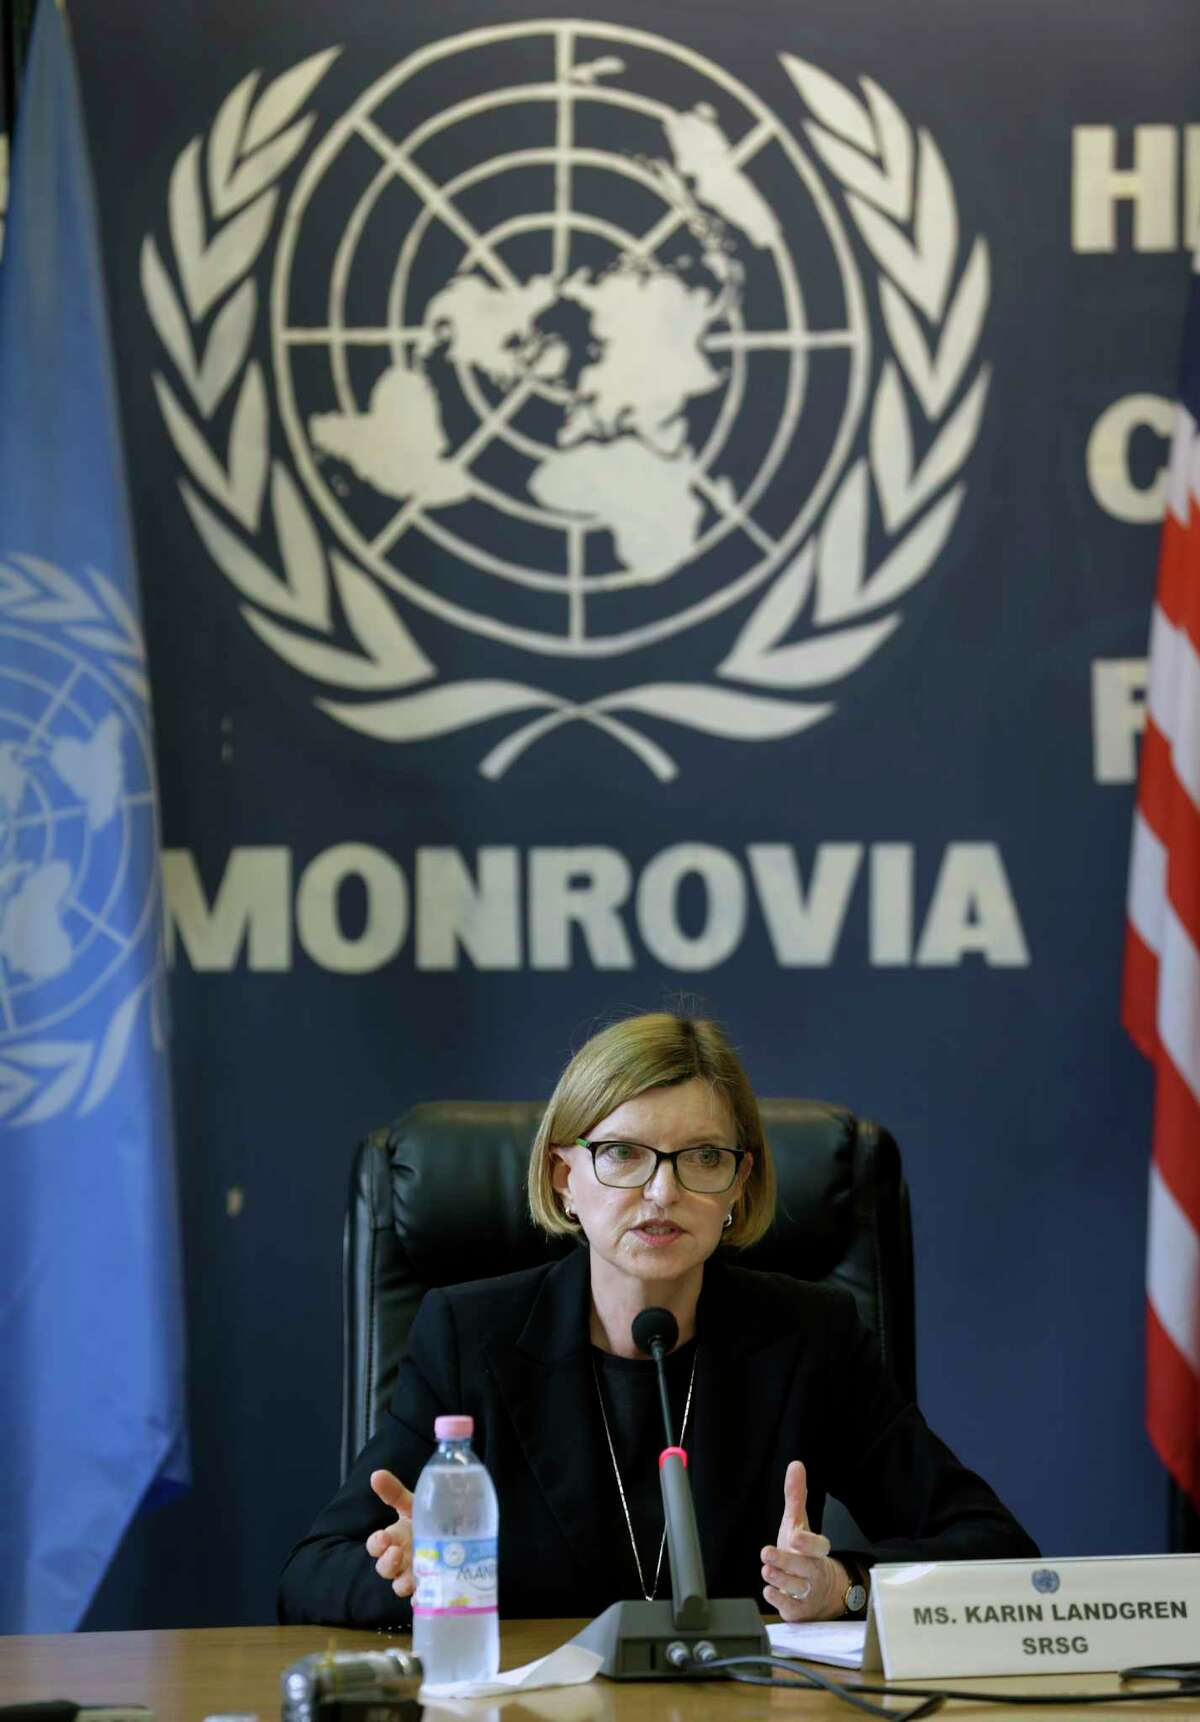 """Karin Landgren, Special Representative of the Secretary-General (SRSG) to the United Nations Mission in Liberia (UNMIL), addresses a news conference in Monrovia, Liberia, Wednesday Oct. 1, 2014. Landgren said, speaking about the Ebola crisis: """"The world is absolutely not doing enough yet, we are still challenged to outrun the disease."""" (AP Photo/Jerome Delay)"""